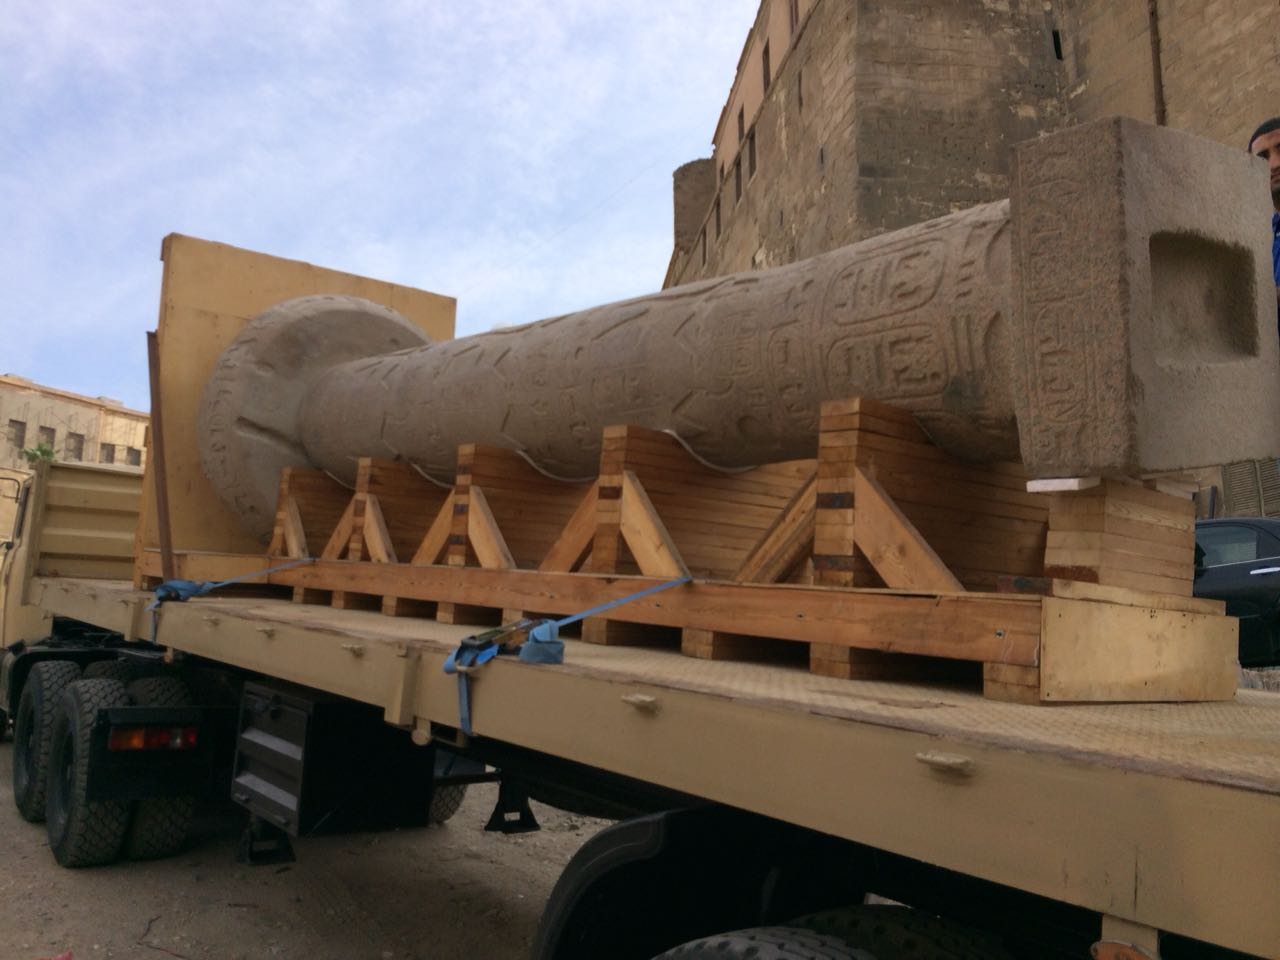 Egypt column moved